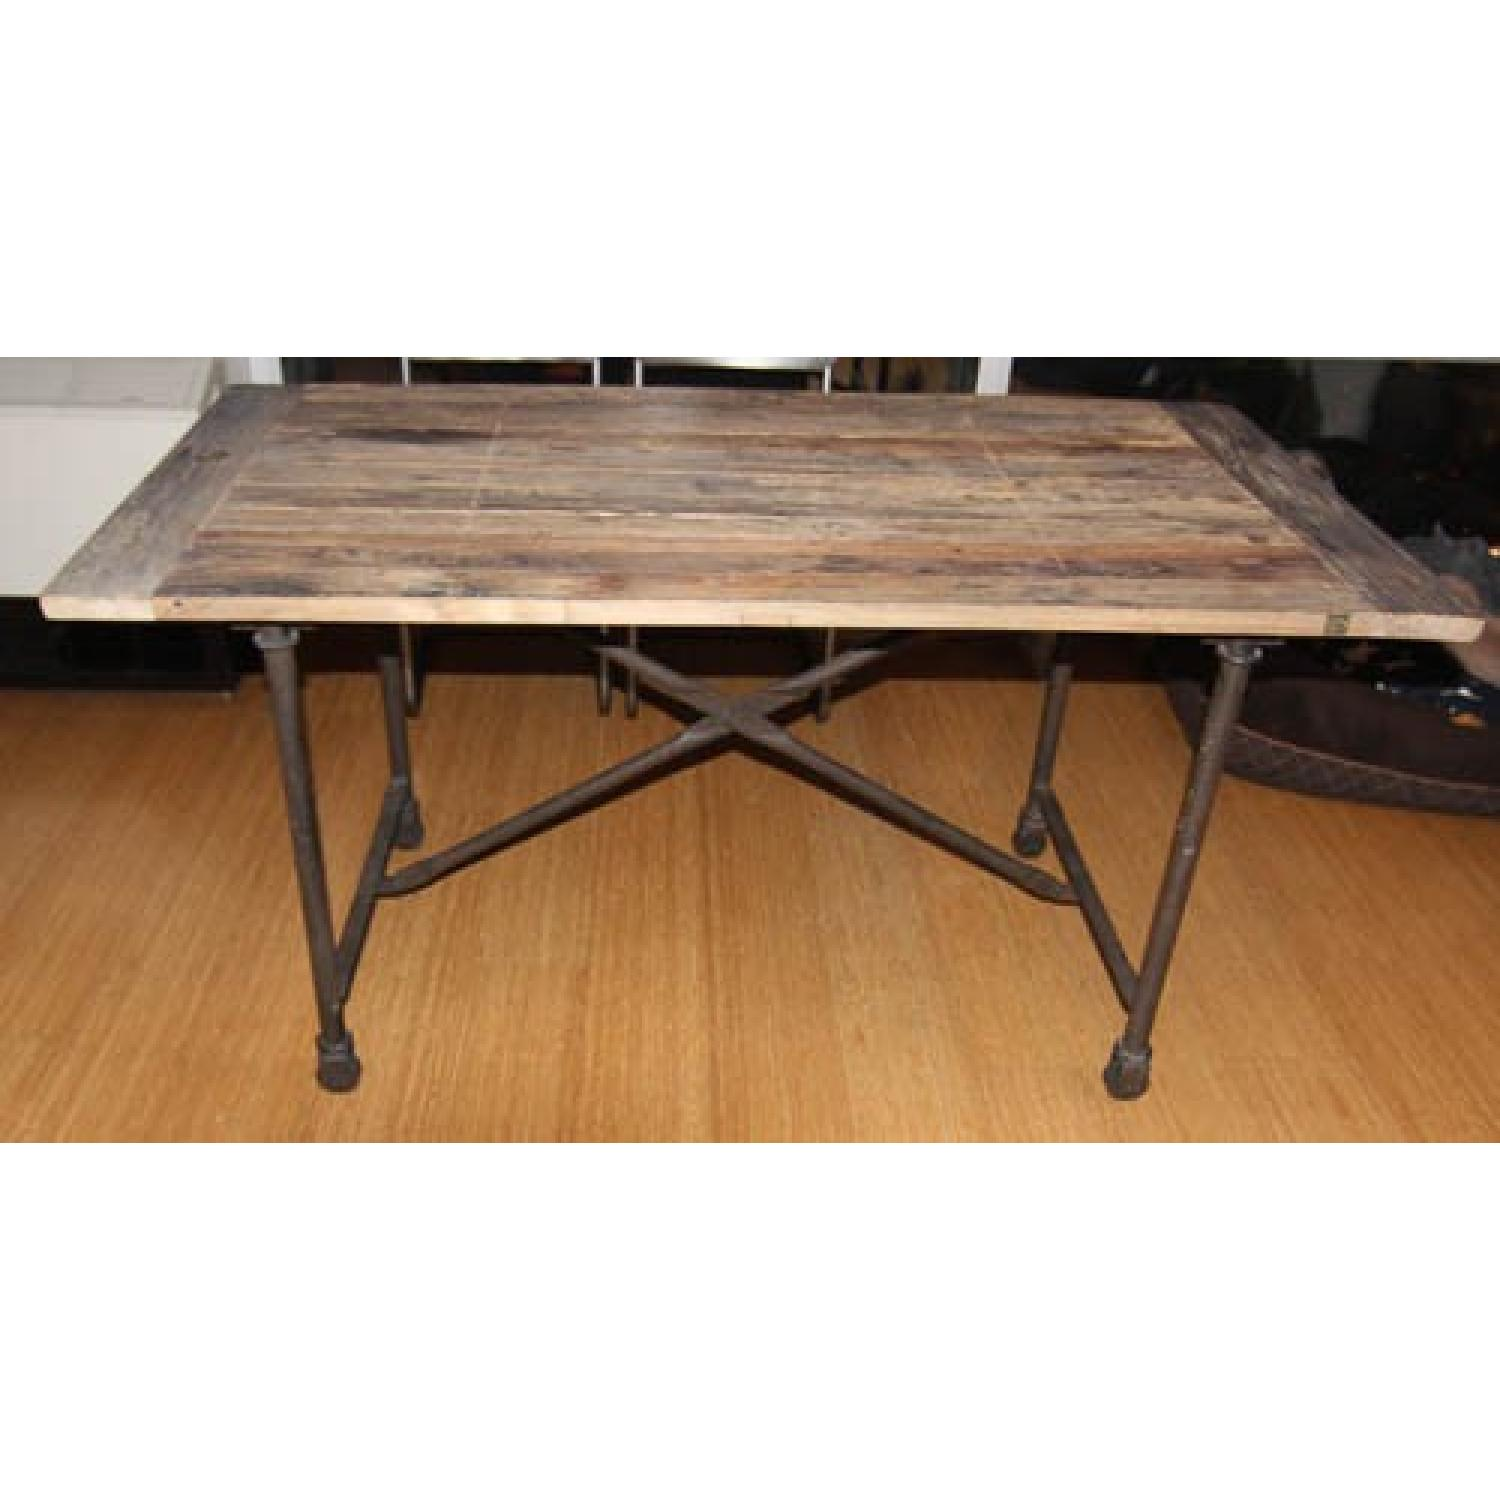 Restoration Hardware Flatiron Rectangular Dining Table - image-2